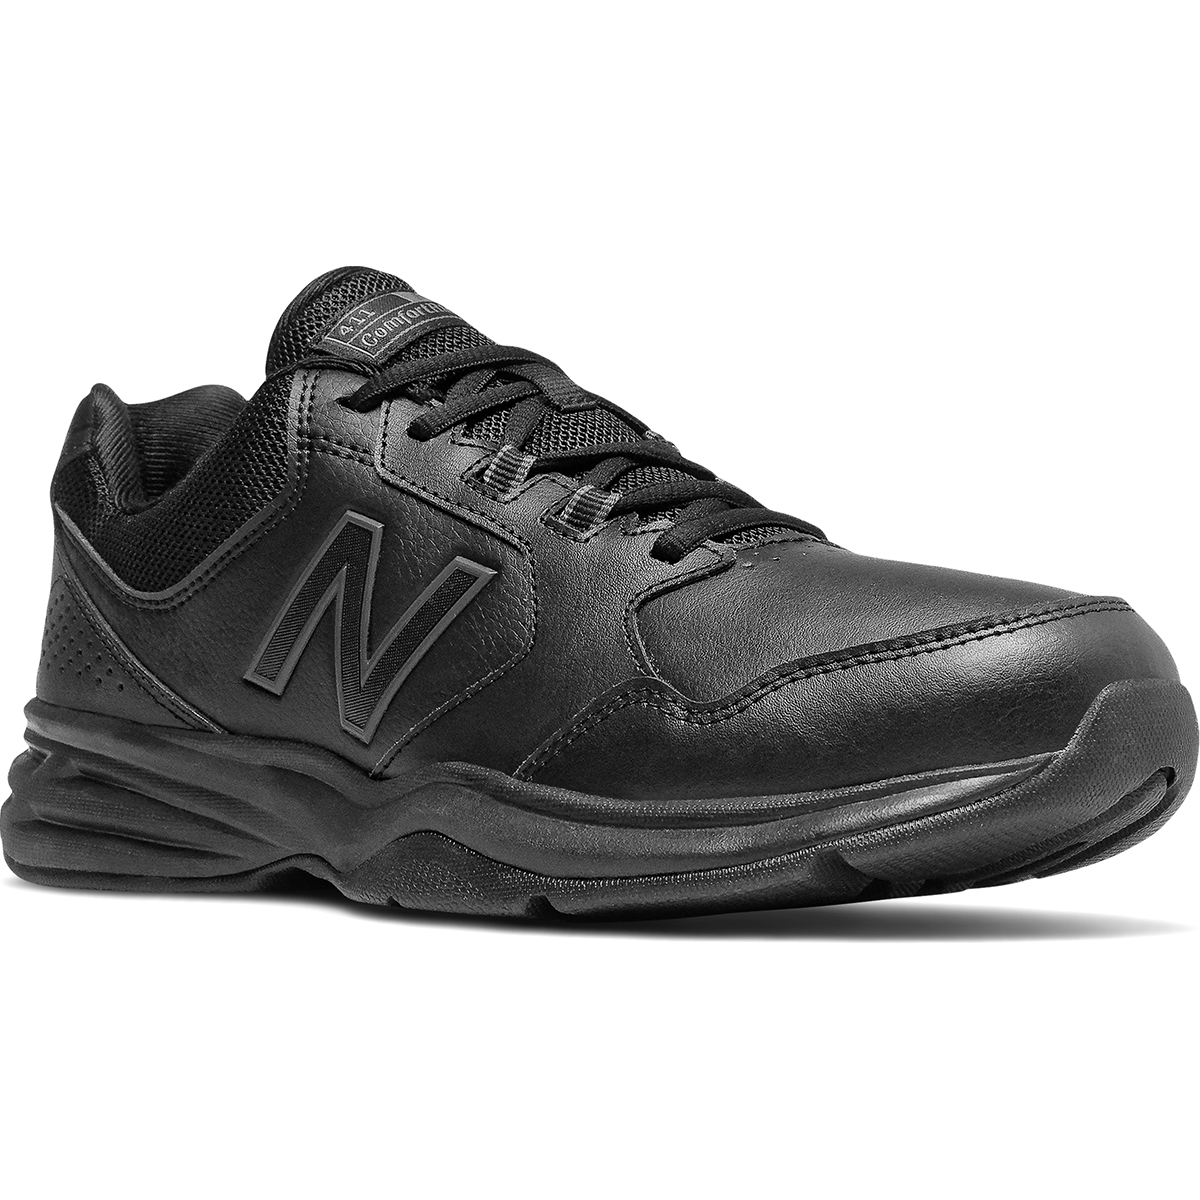 New Balance Men's 411 Walking Shoes - Black, 10.5